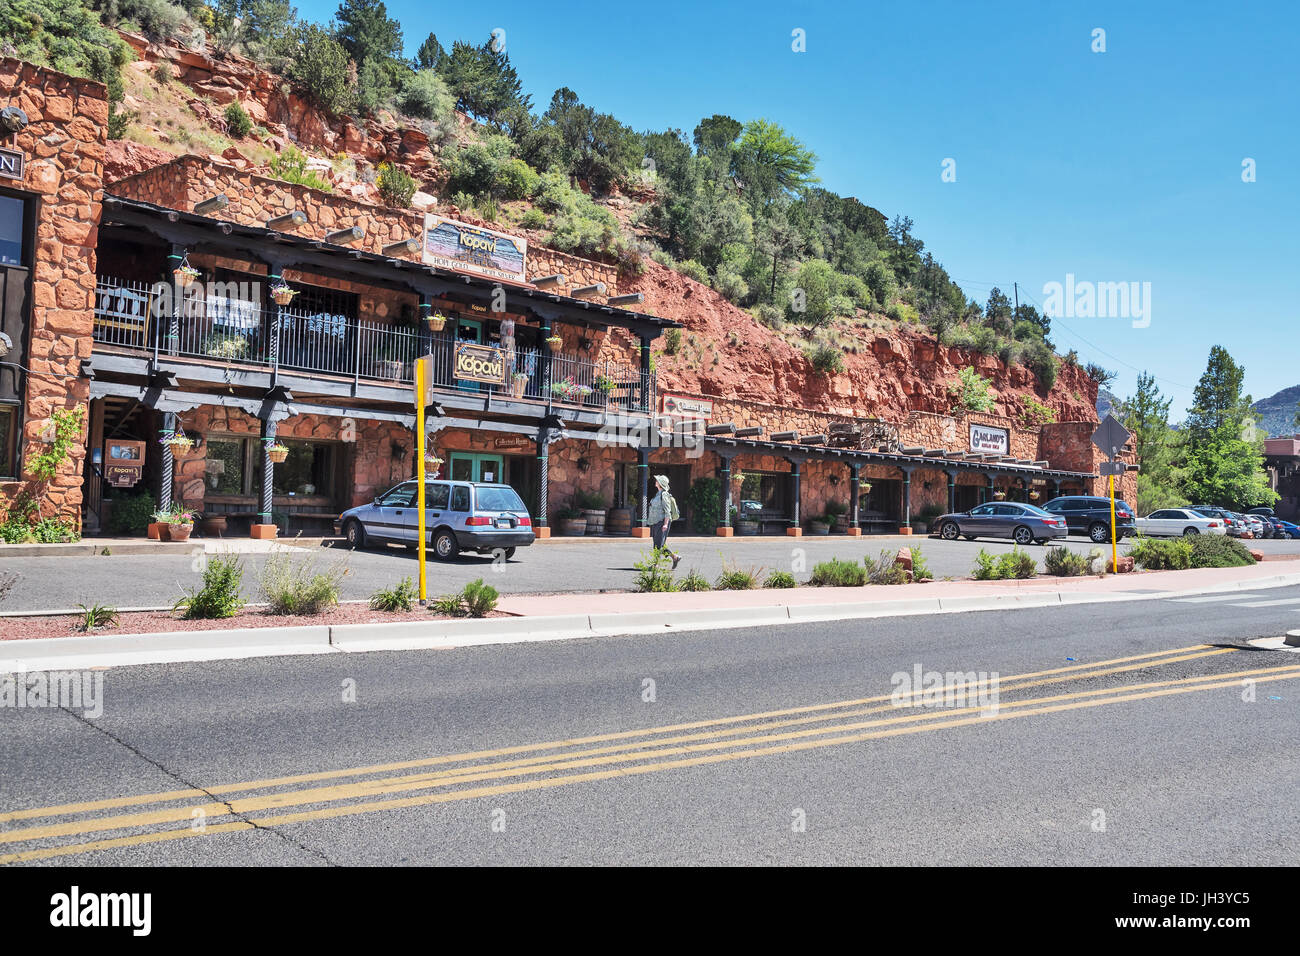 Extraordinary shopping complex in the rock, Sedona, Arizona, USA - Stock Image